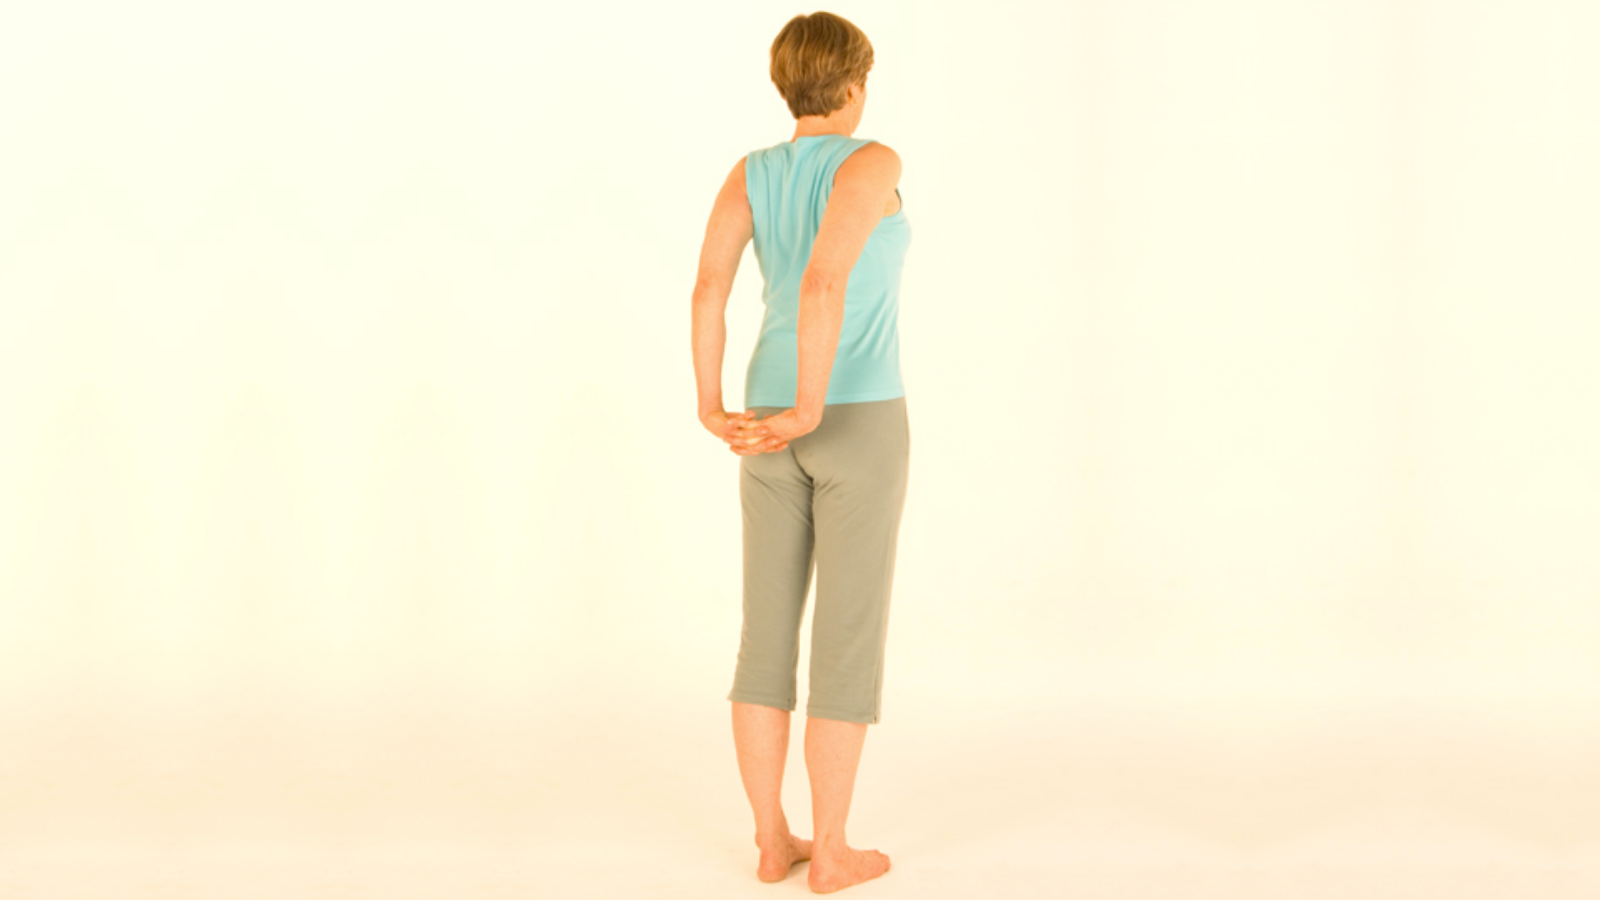 Shoulder exercise to increase mobility and release tension